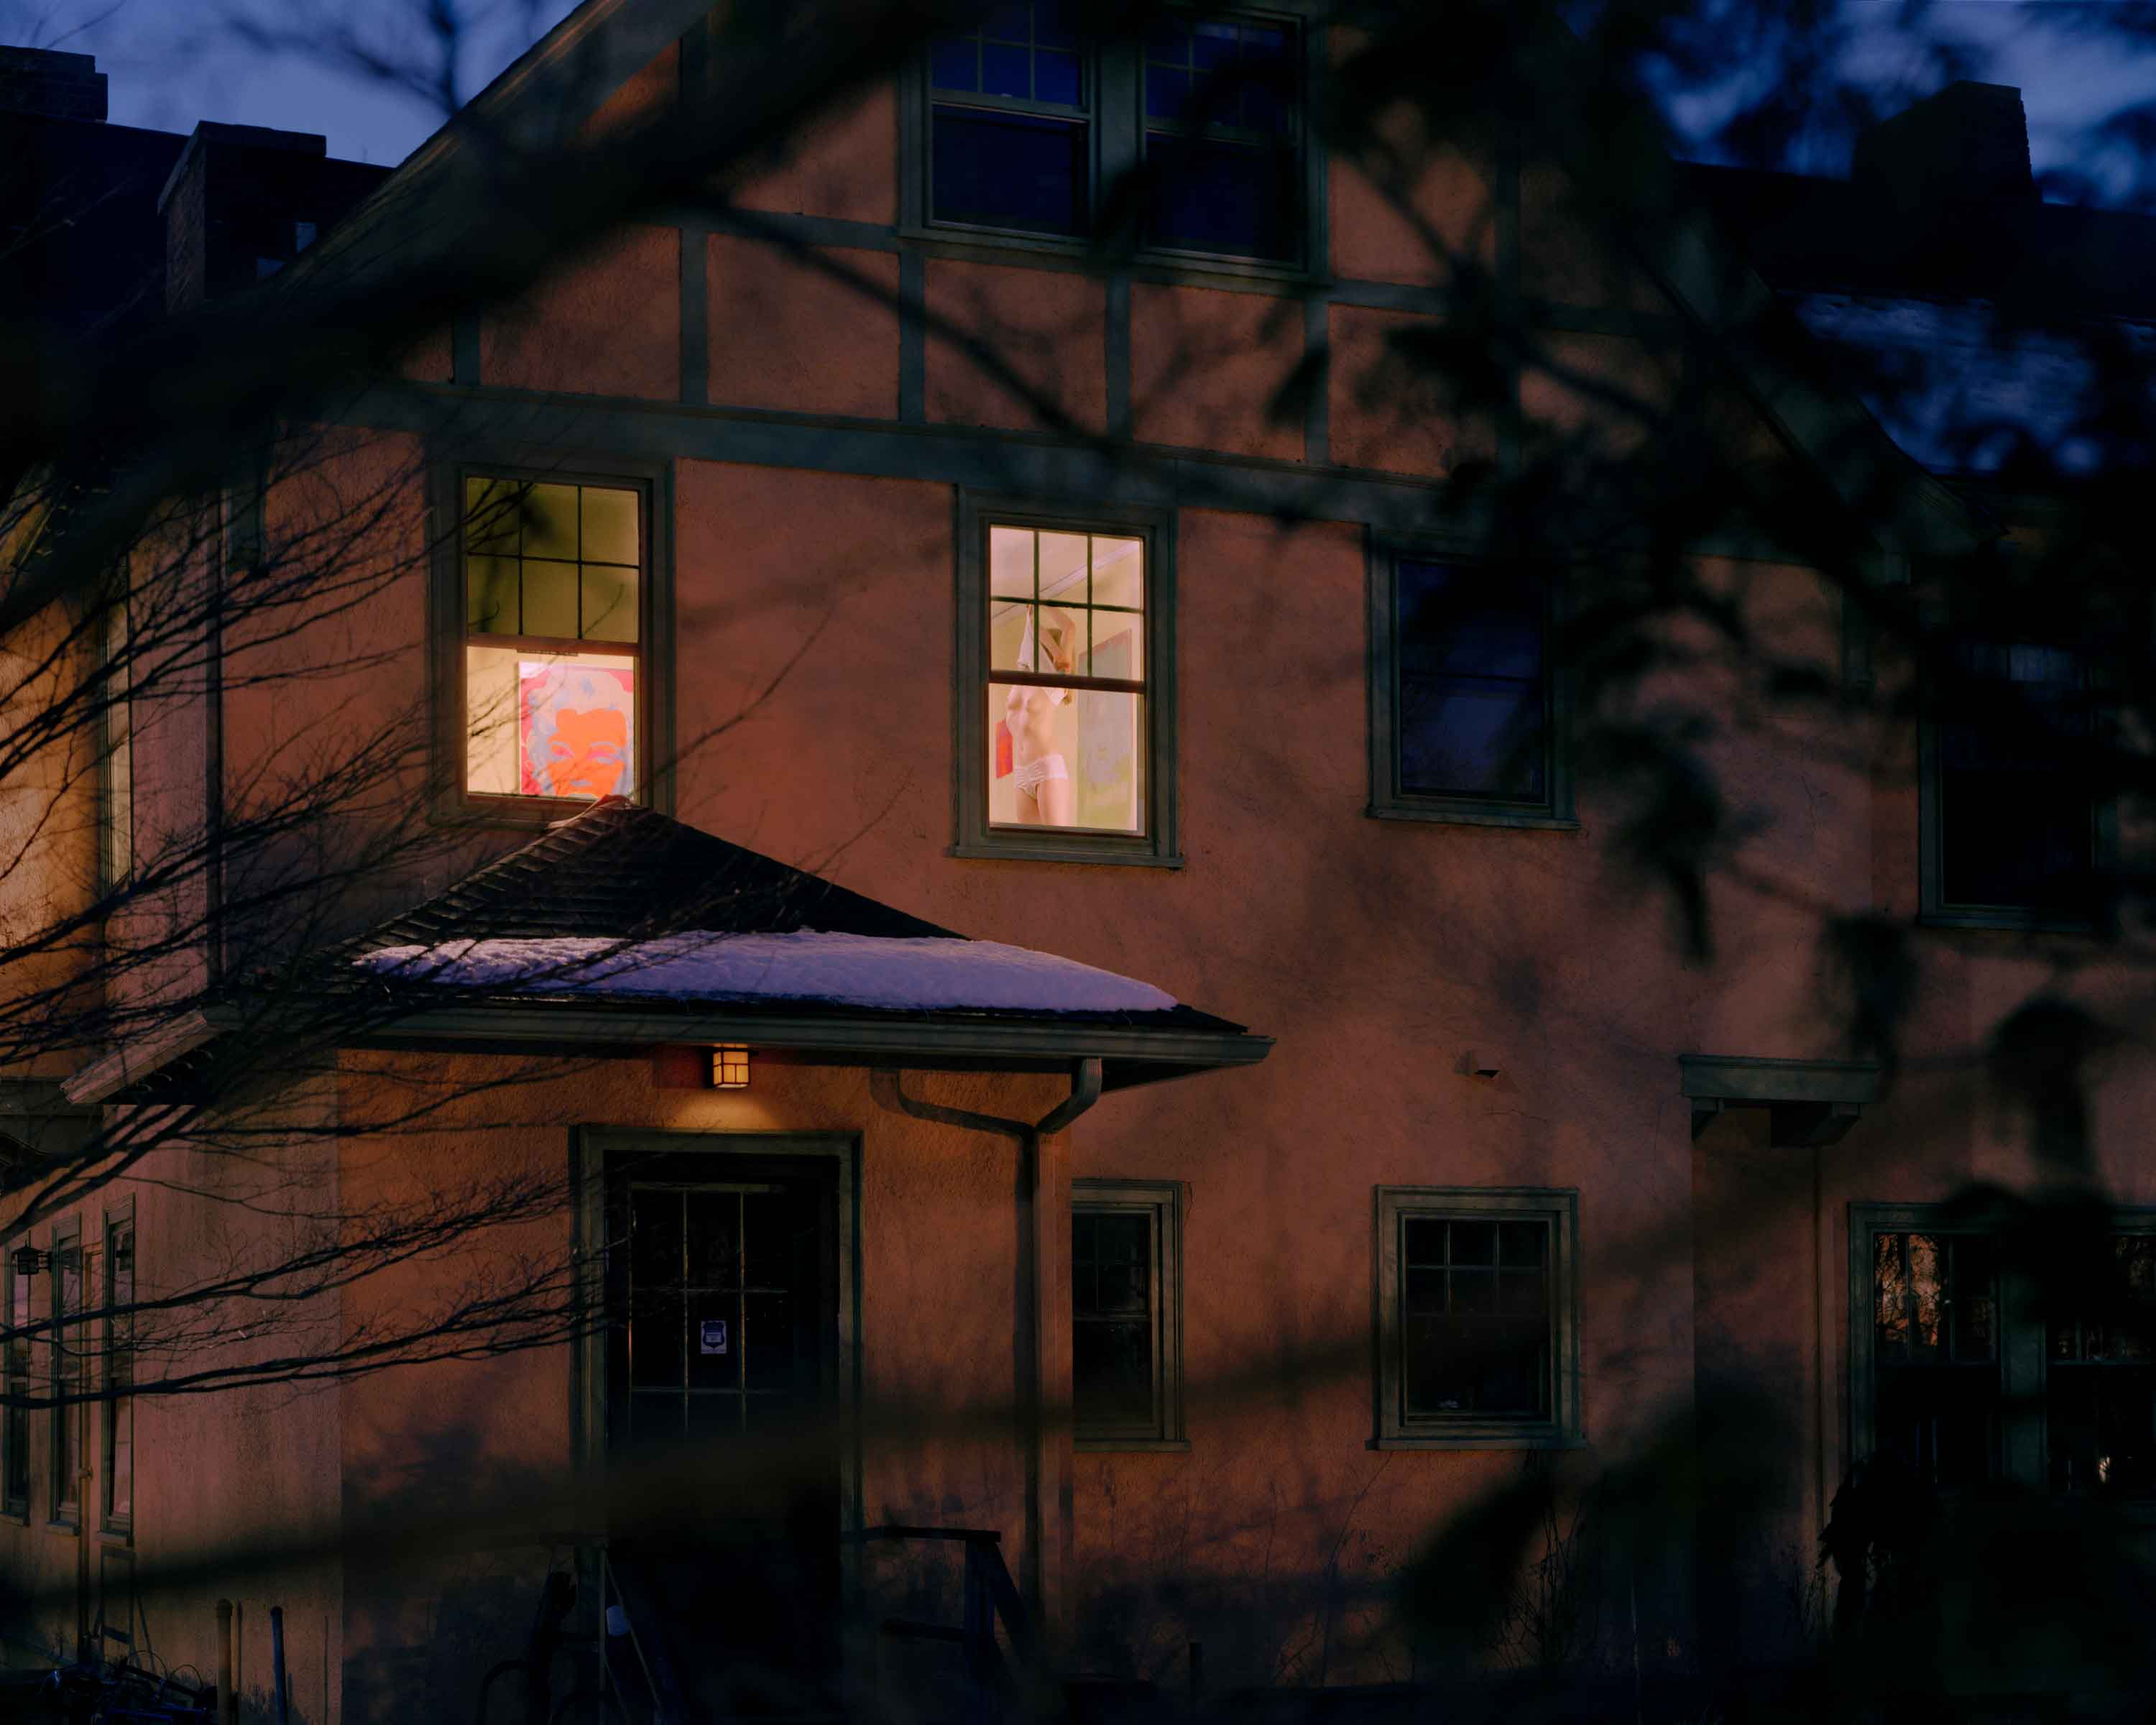 "Angela Strassheim, Untitled (Isabel at the Window), 2005, C-print, 40"" x 50 "", archival pigment print, from Left Behind series"